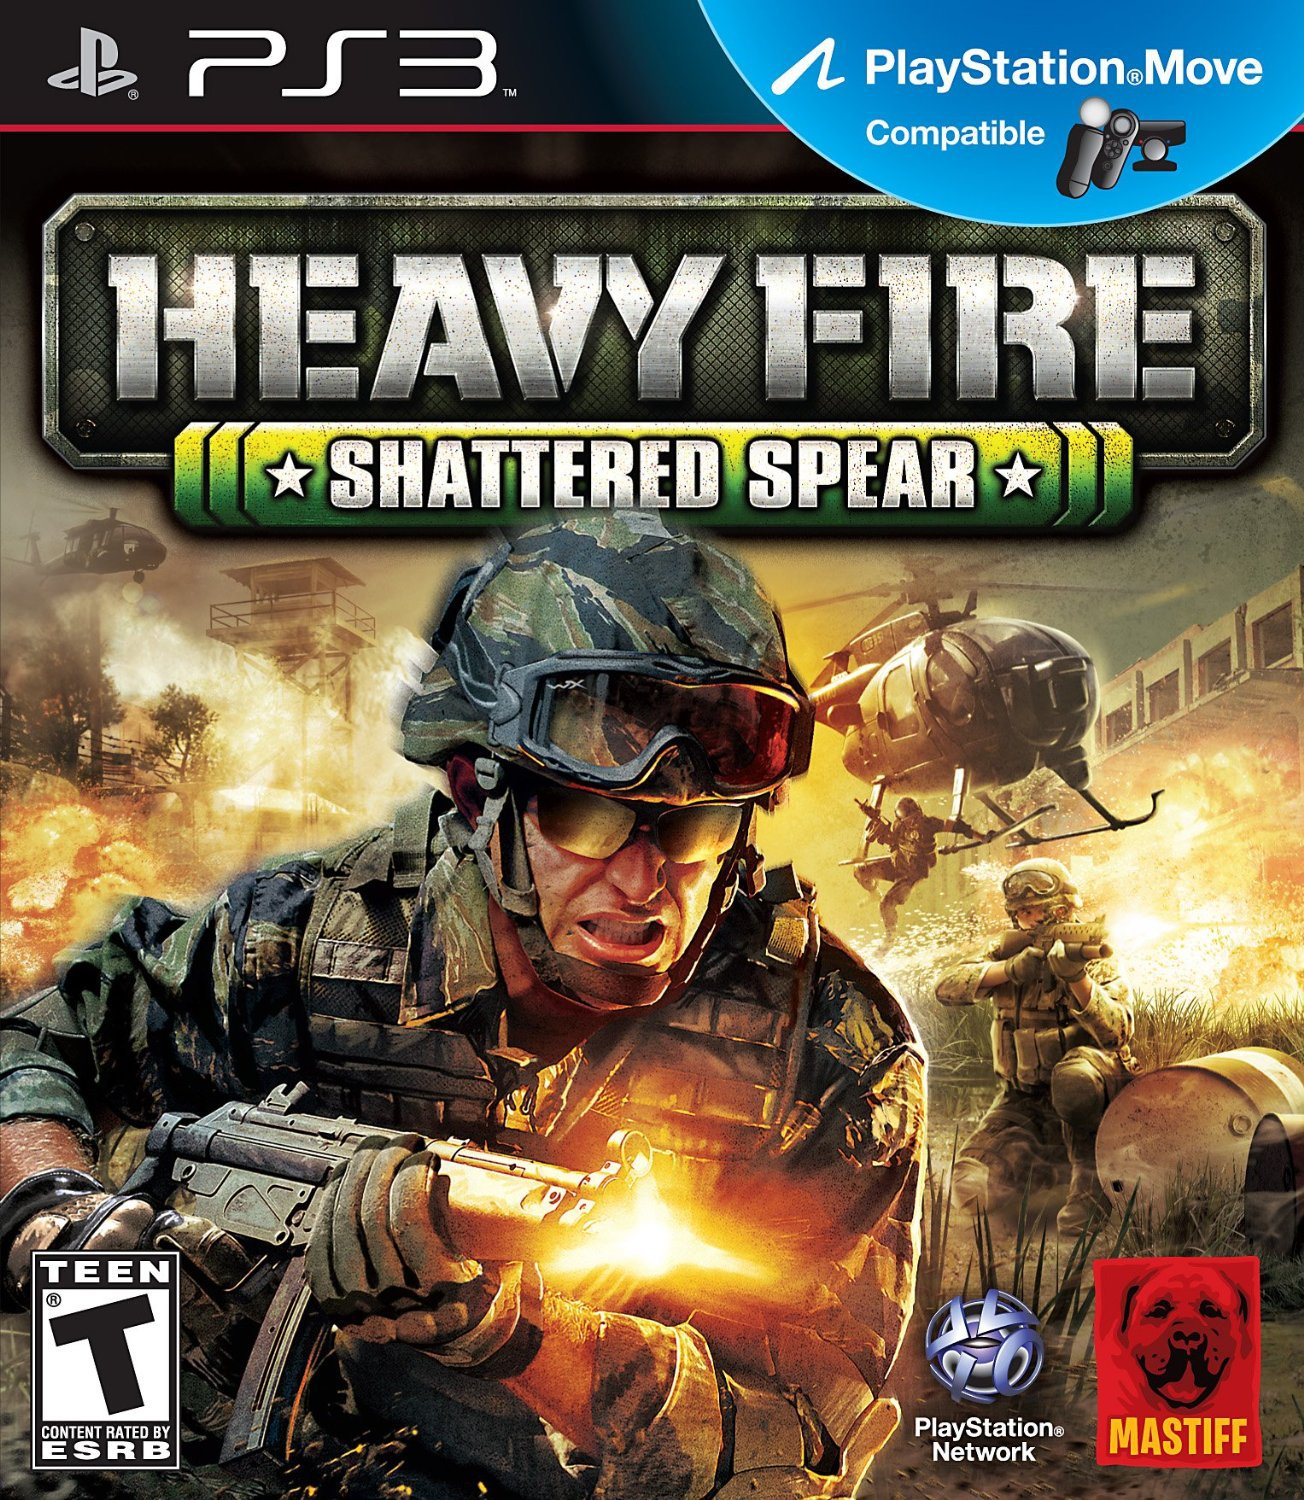 Heavy Fire: Shattered Spear